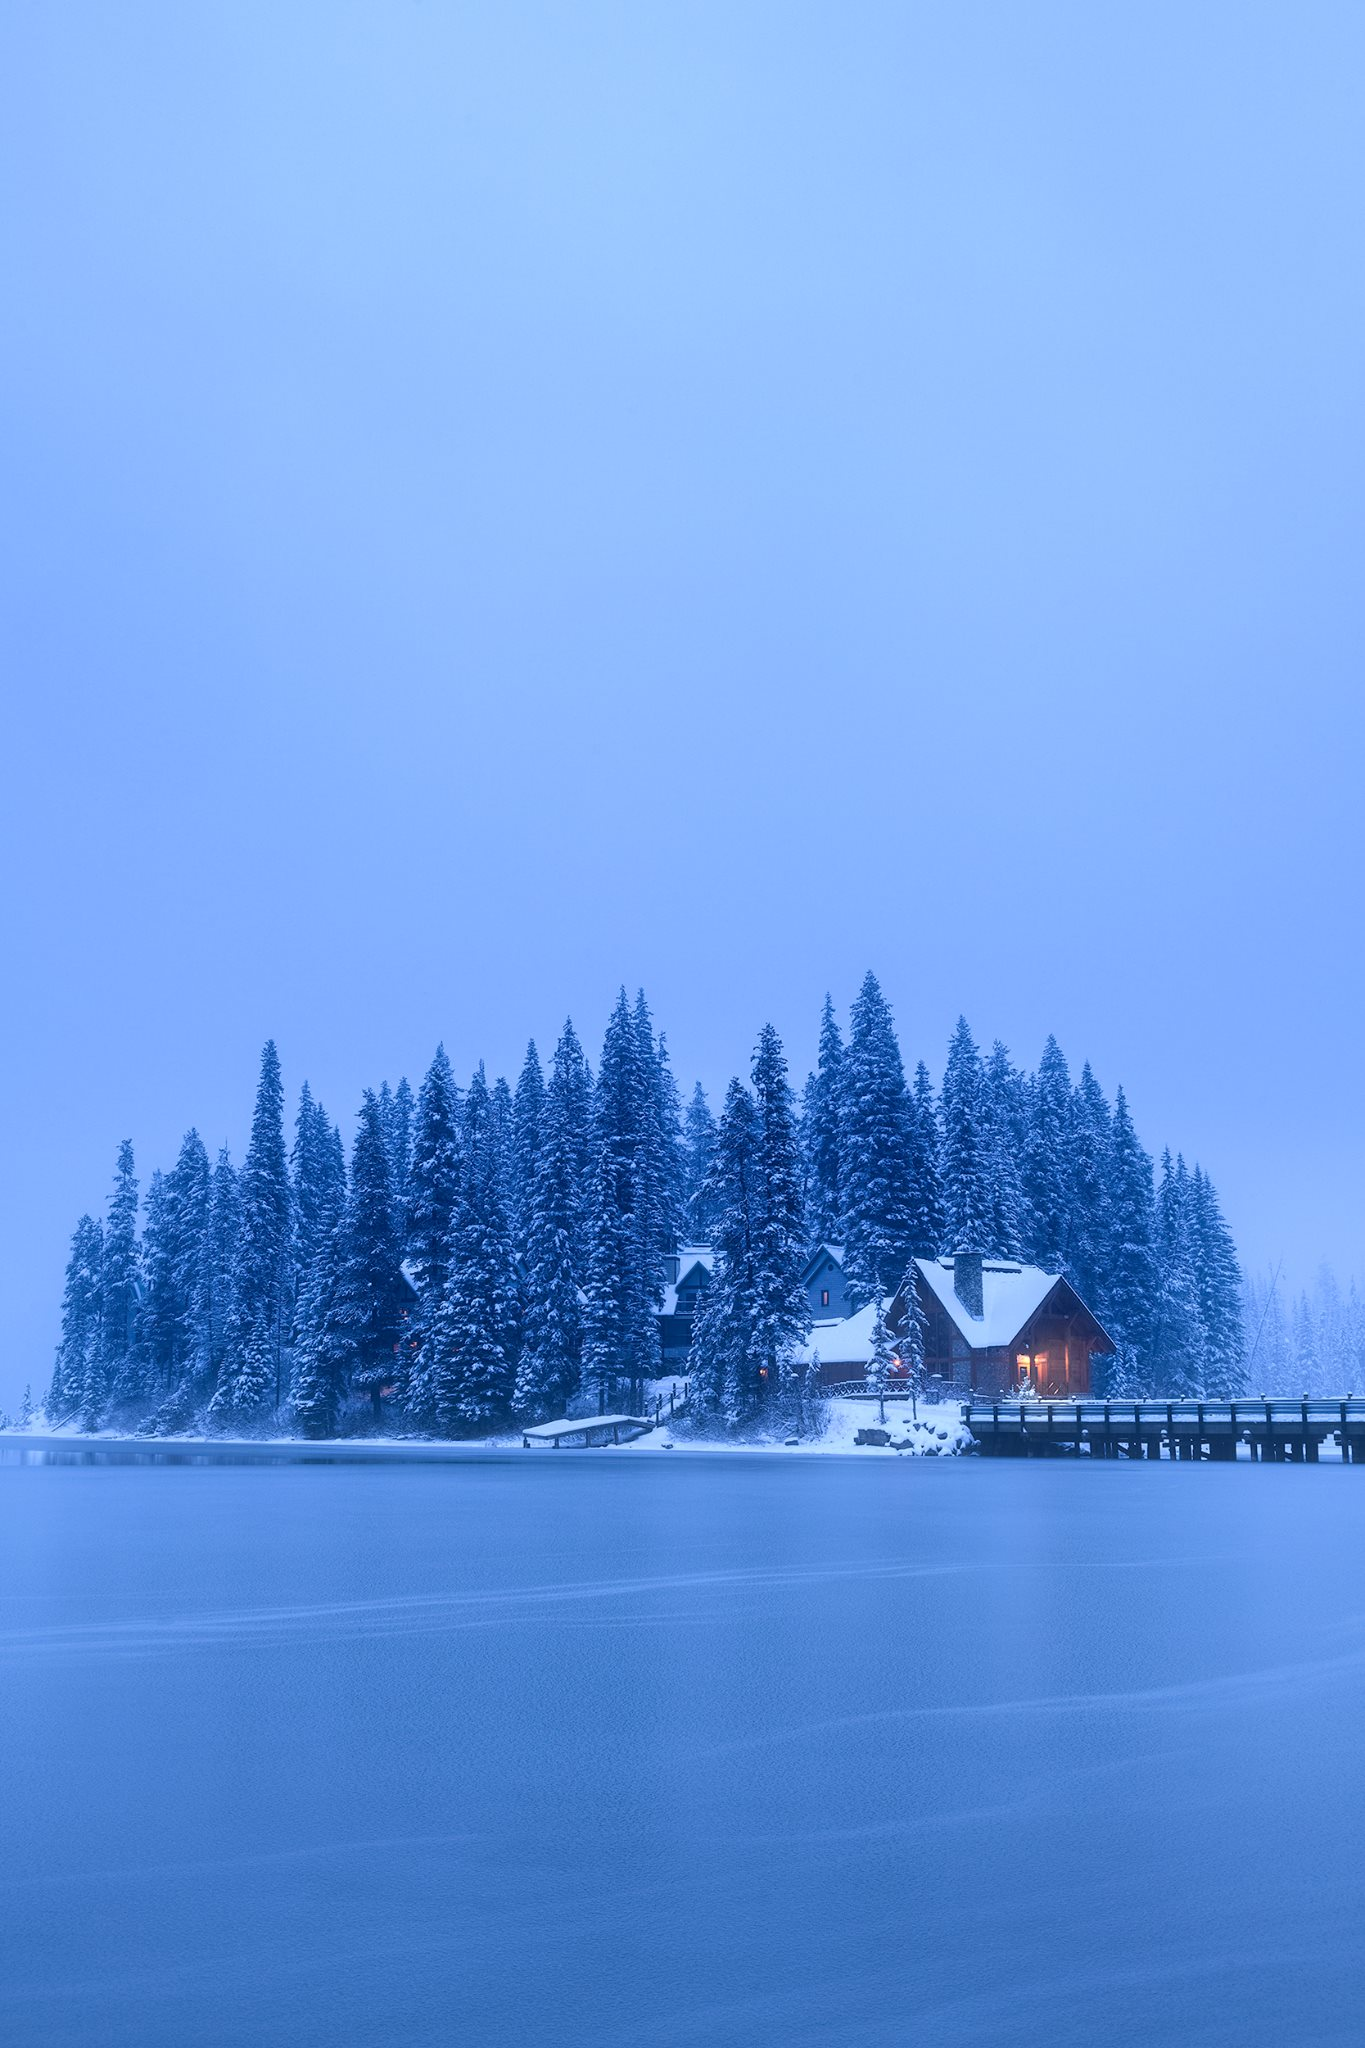 Emerald Lake in British Columbia after a day of heavy snowfall.  Nikon Z7 | Nikon 24-70mm